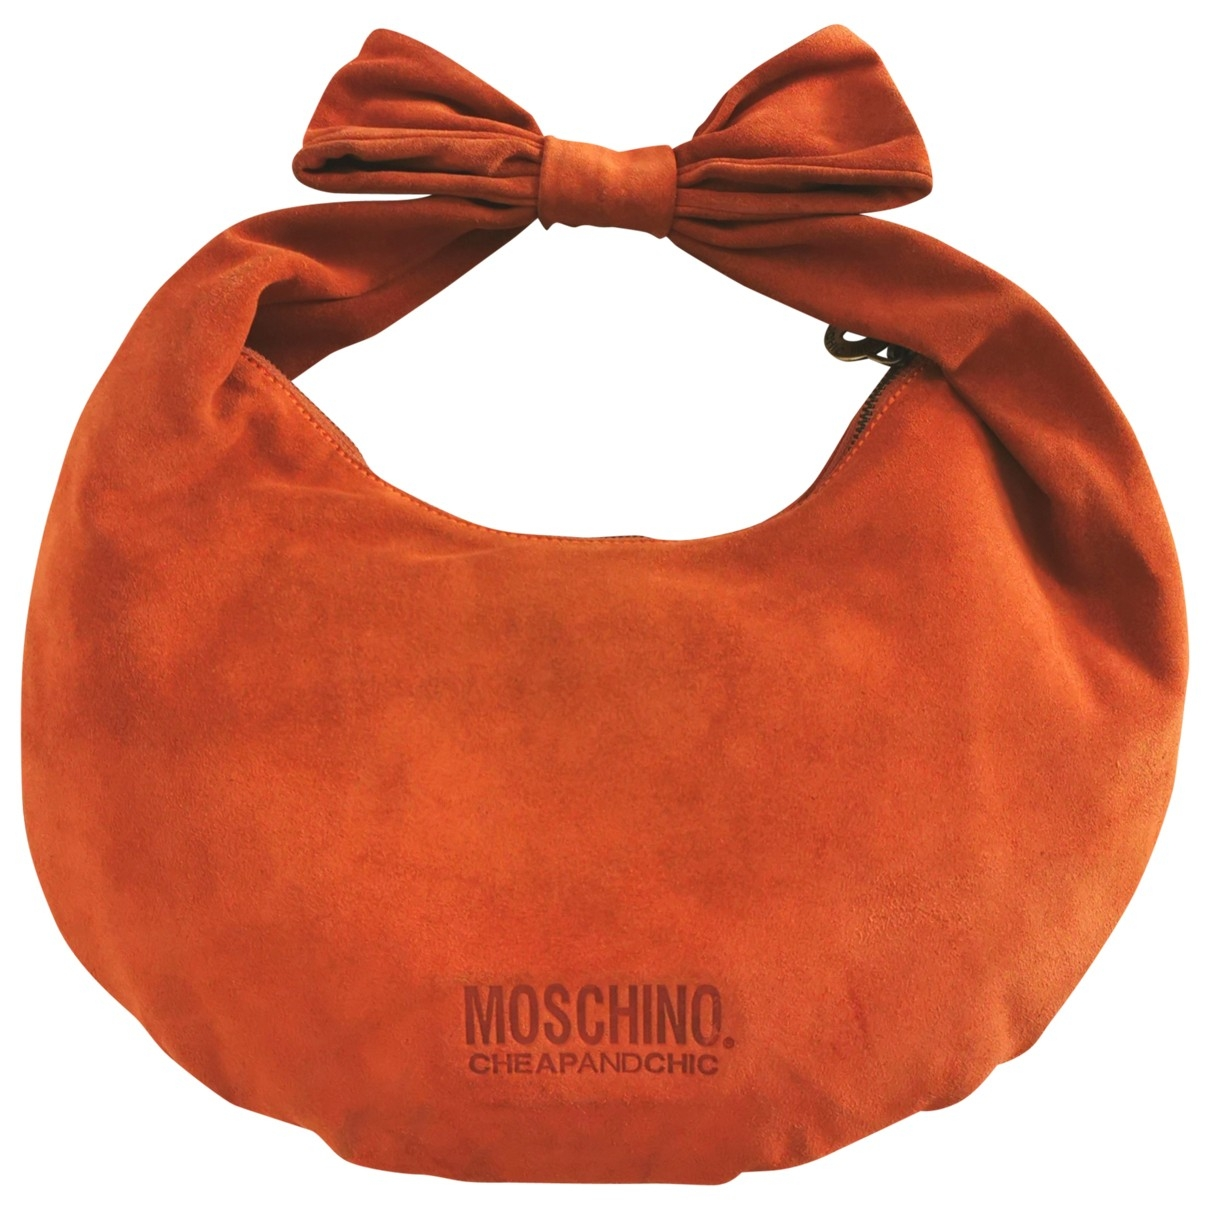 Moschino Cheap And Chic \N Suede handbag for Women \N